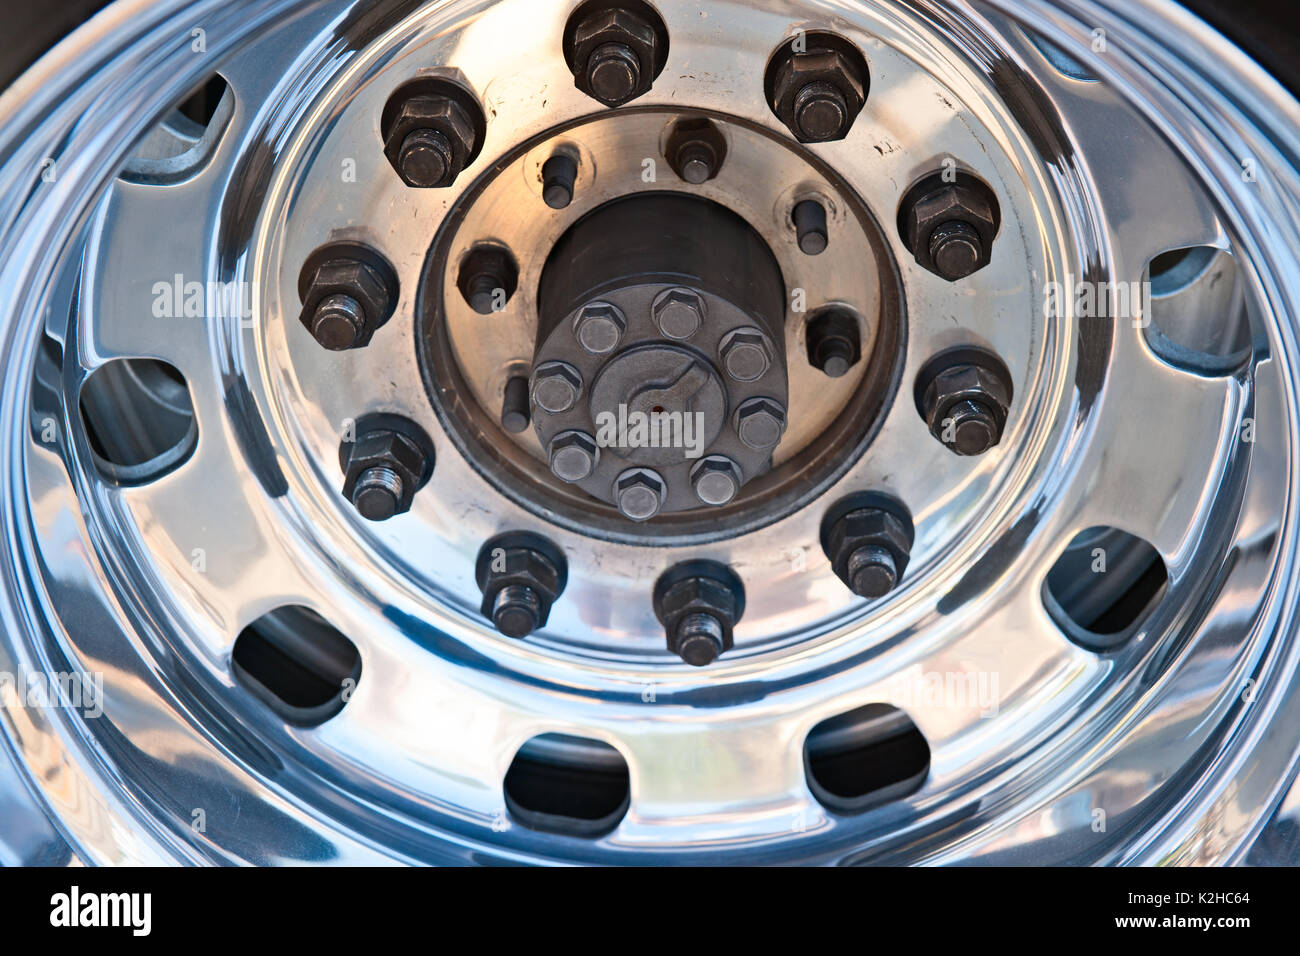 closeup view of a chrome plated modern sports or hotrod car double tire wheel